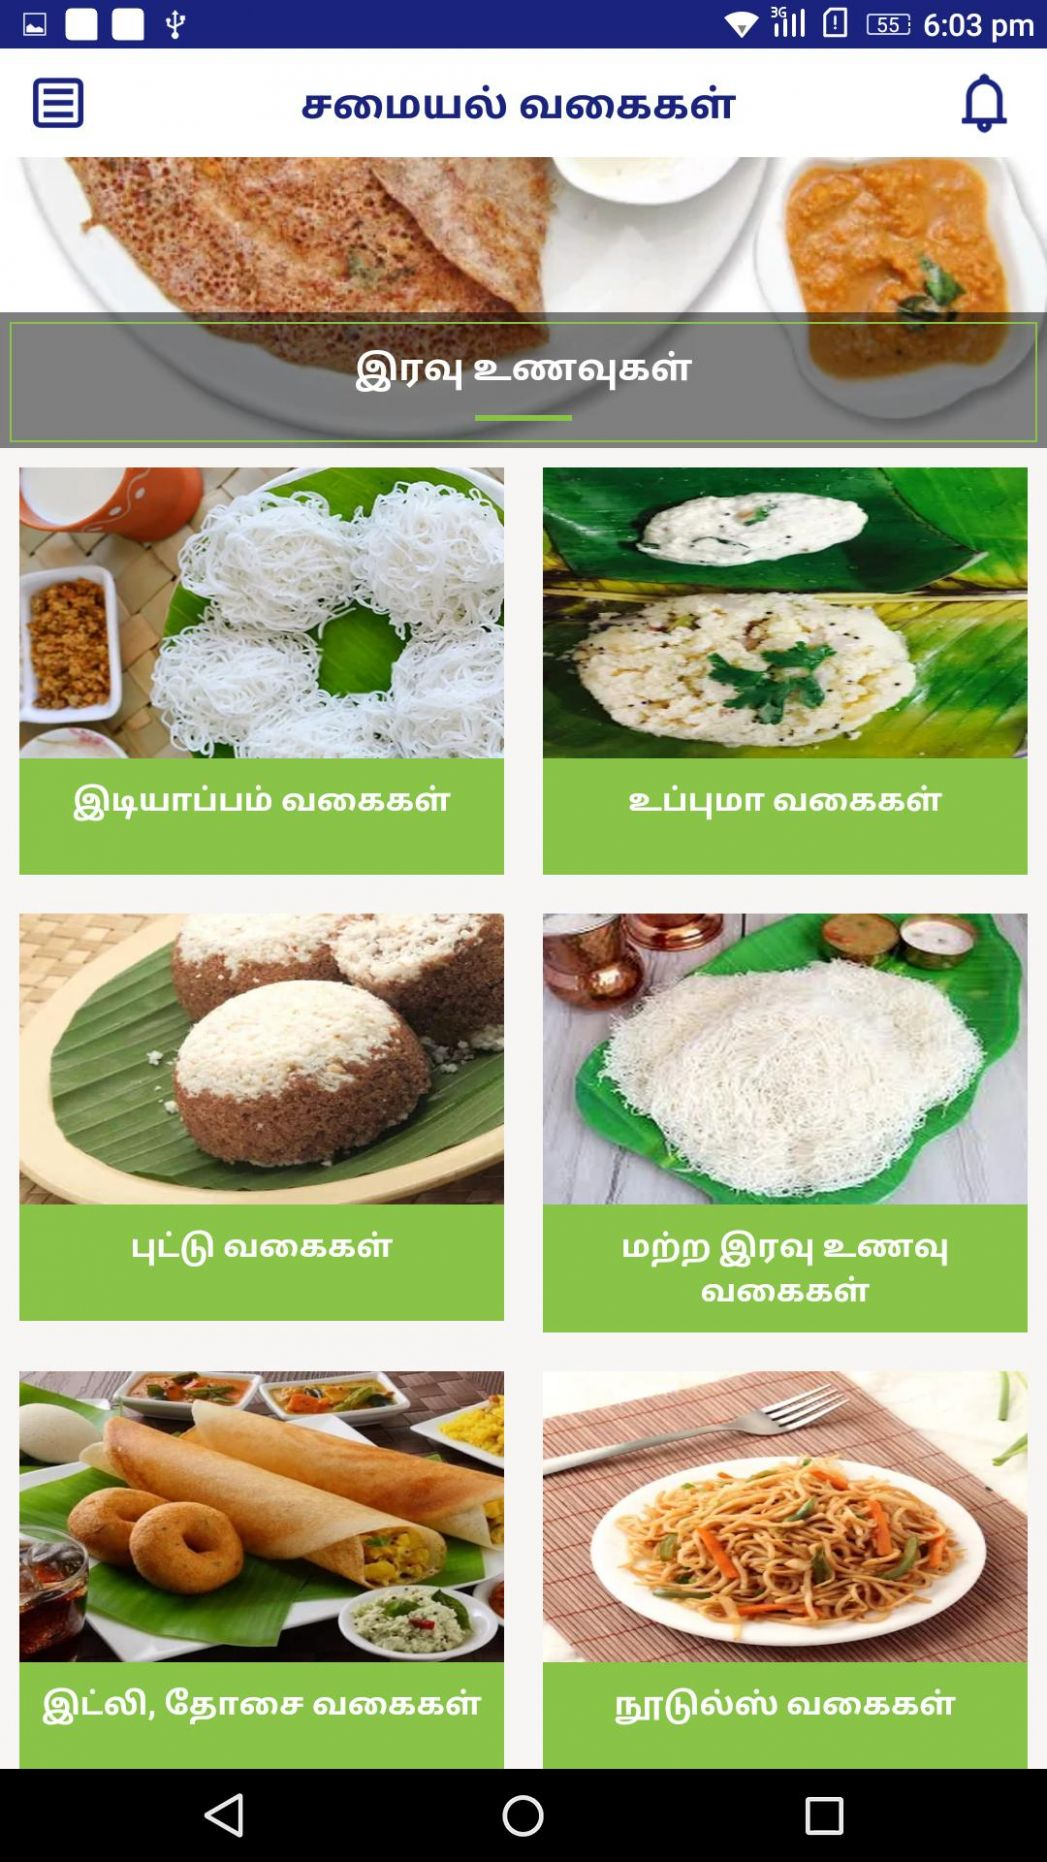 Dinner Recipes & Tips in Tamil for Android - APK Download - Dinner Recipes Tamil